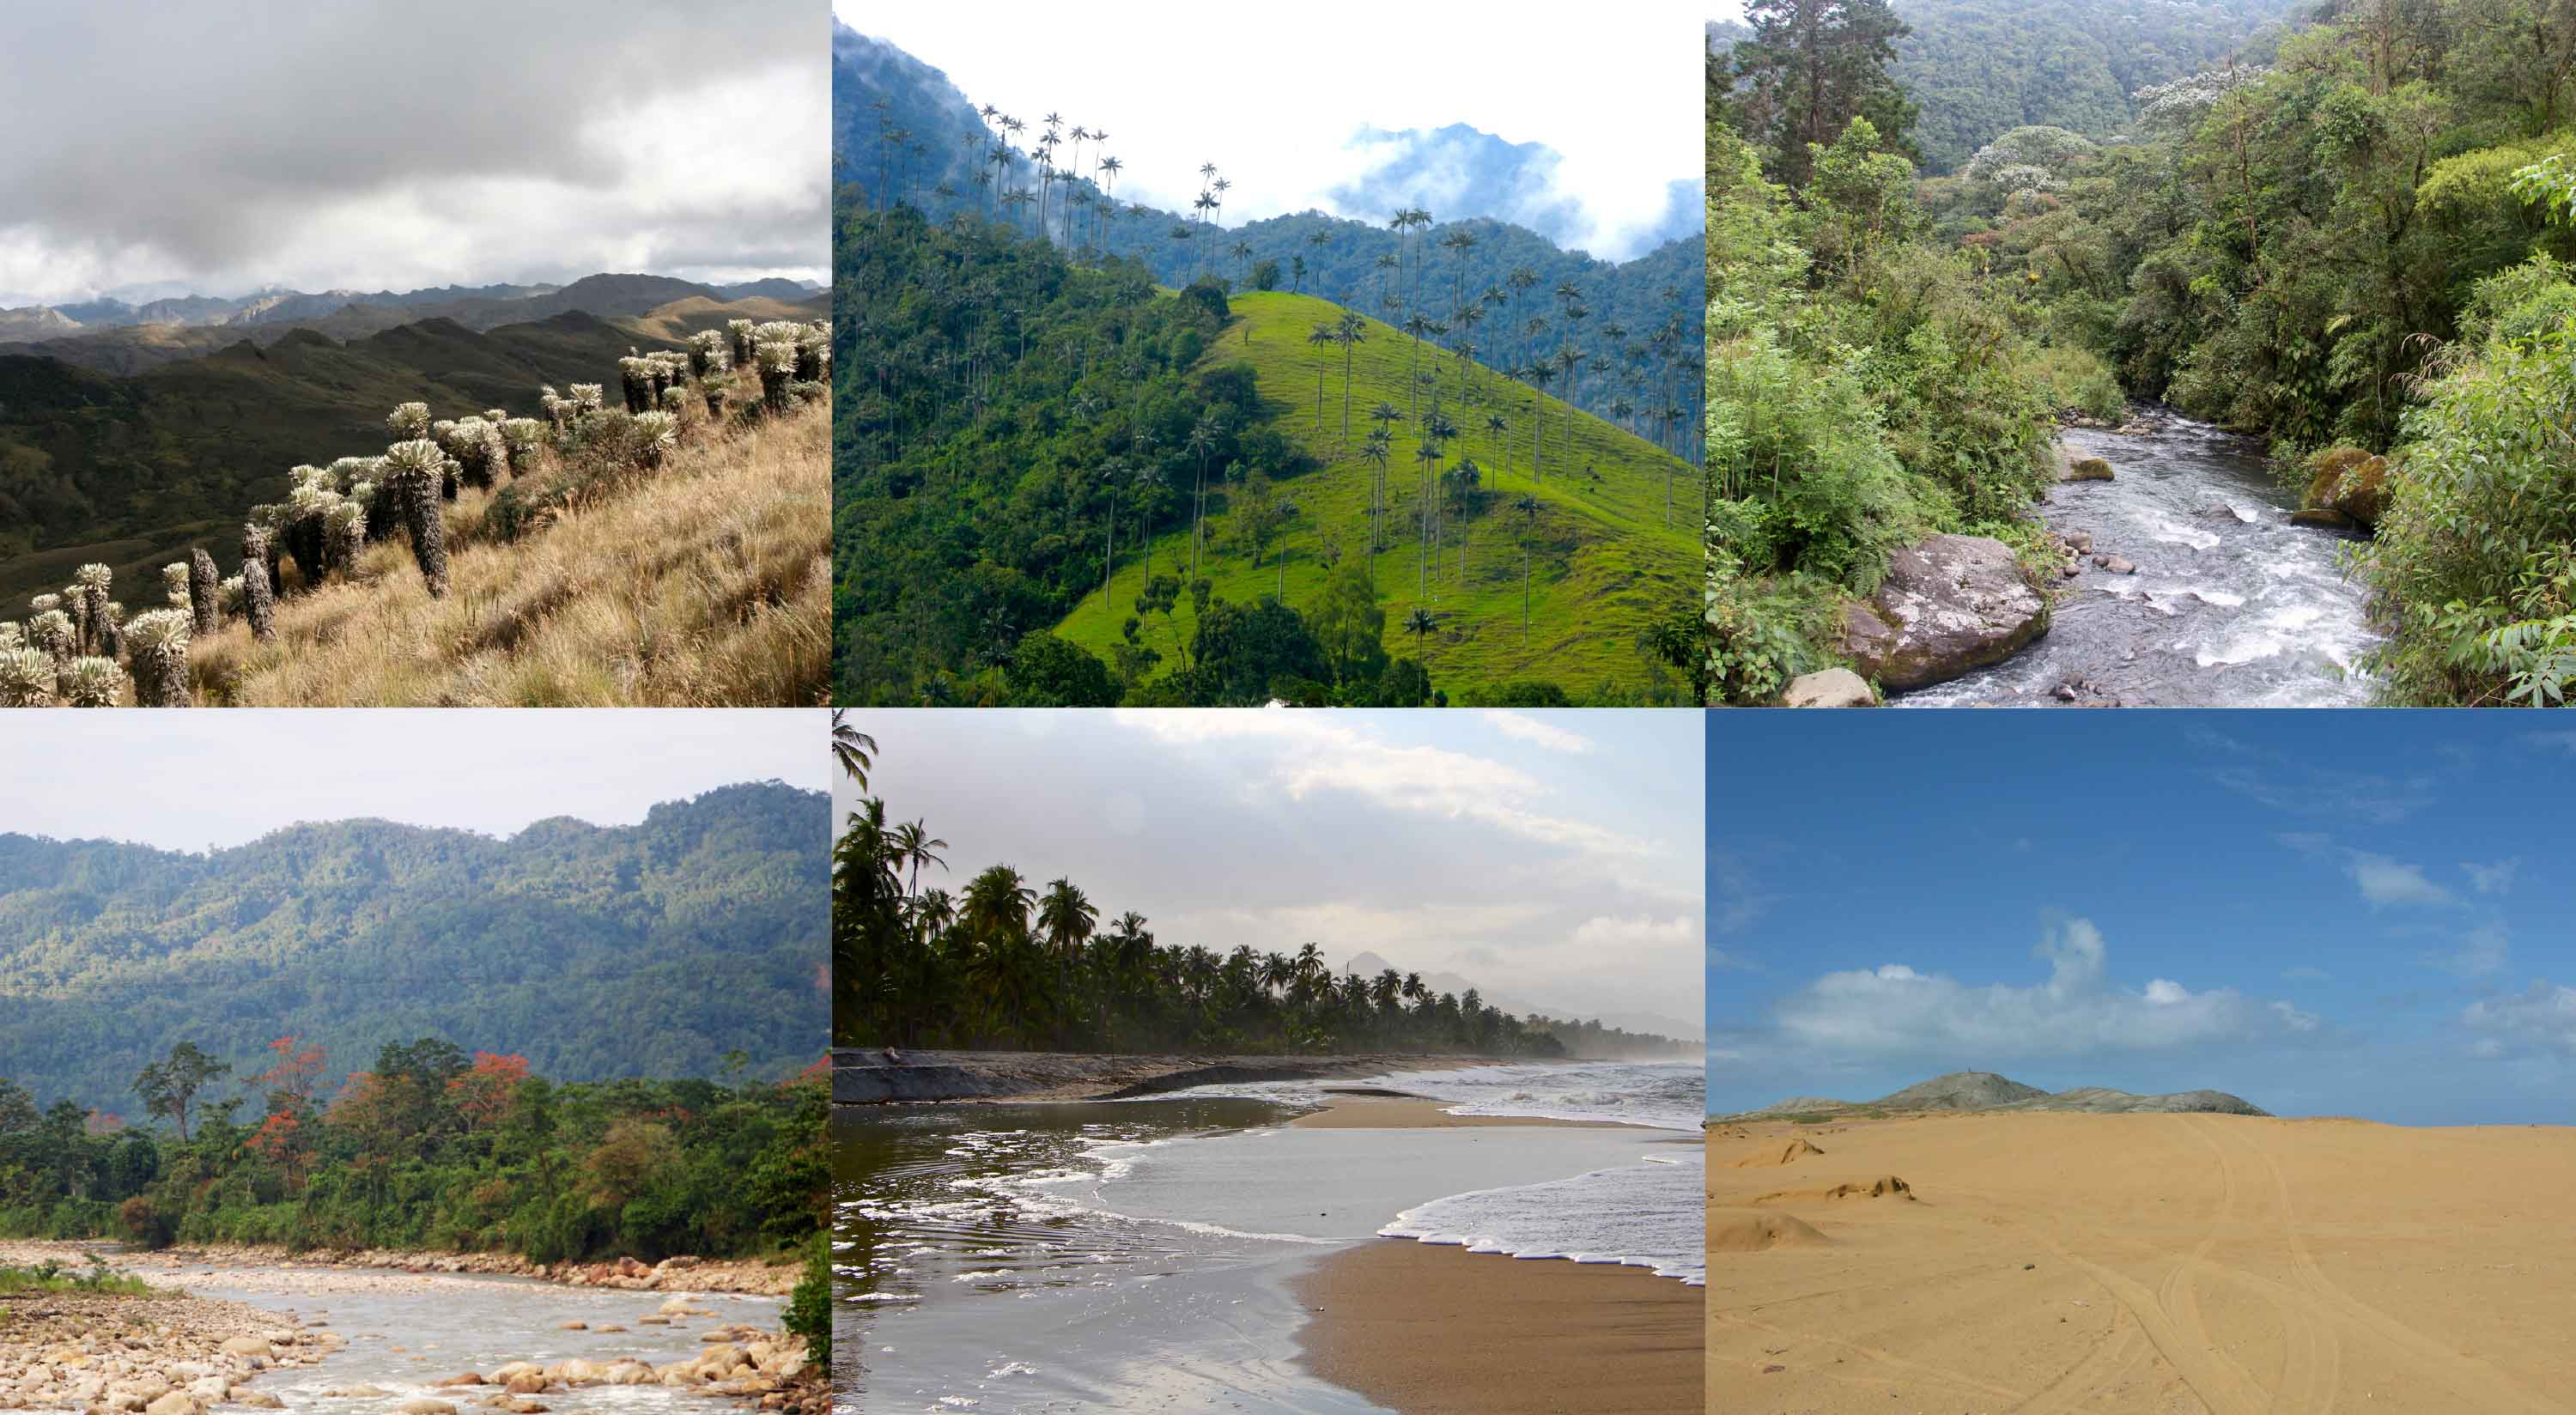 Colombia Megadiverse And Still To Be Discovered